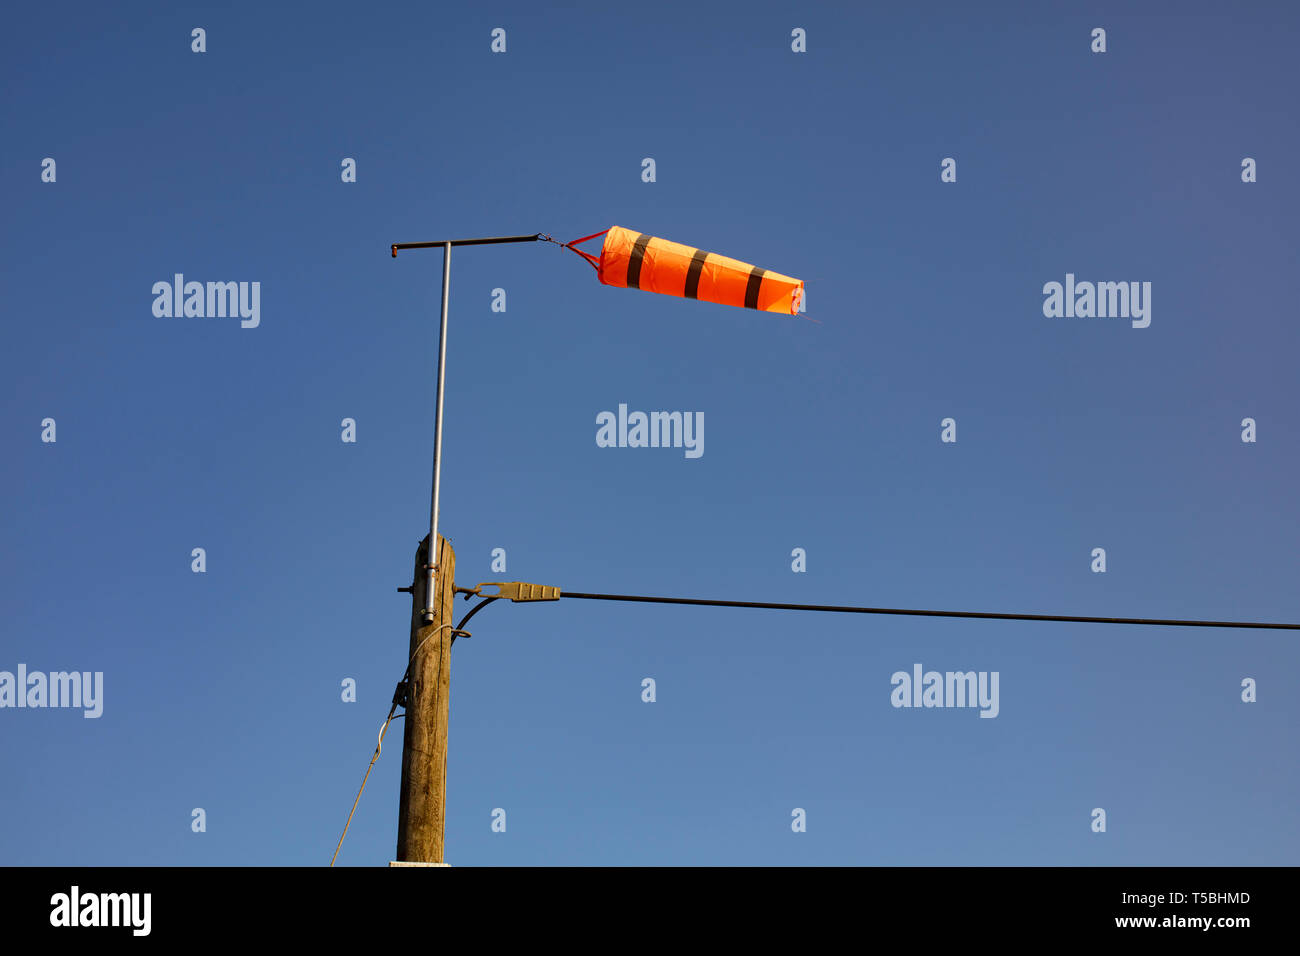 Windfahne - Stock Image